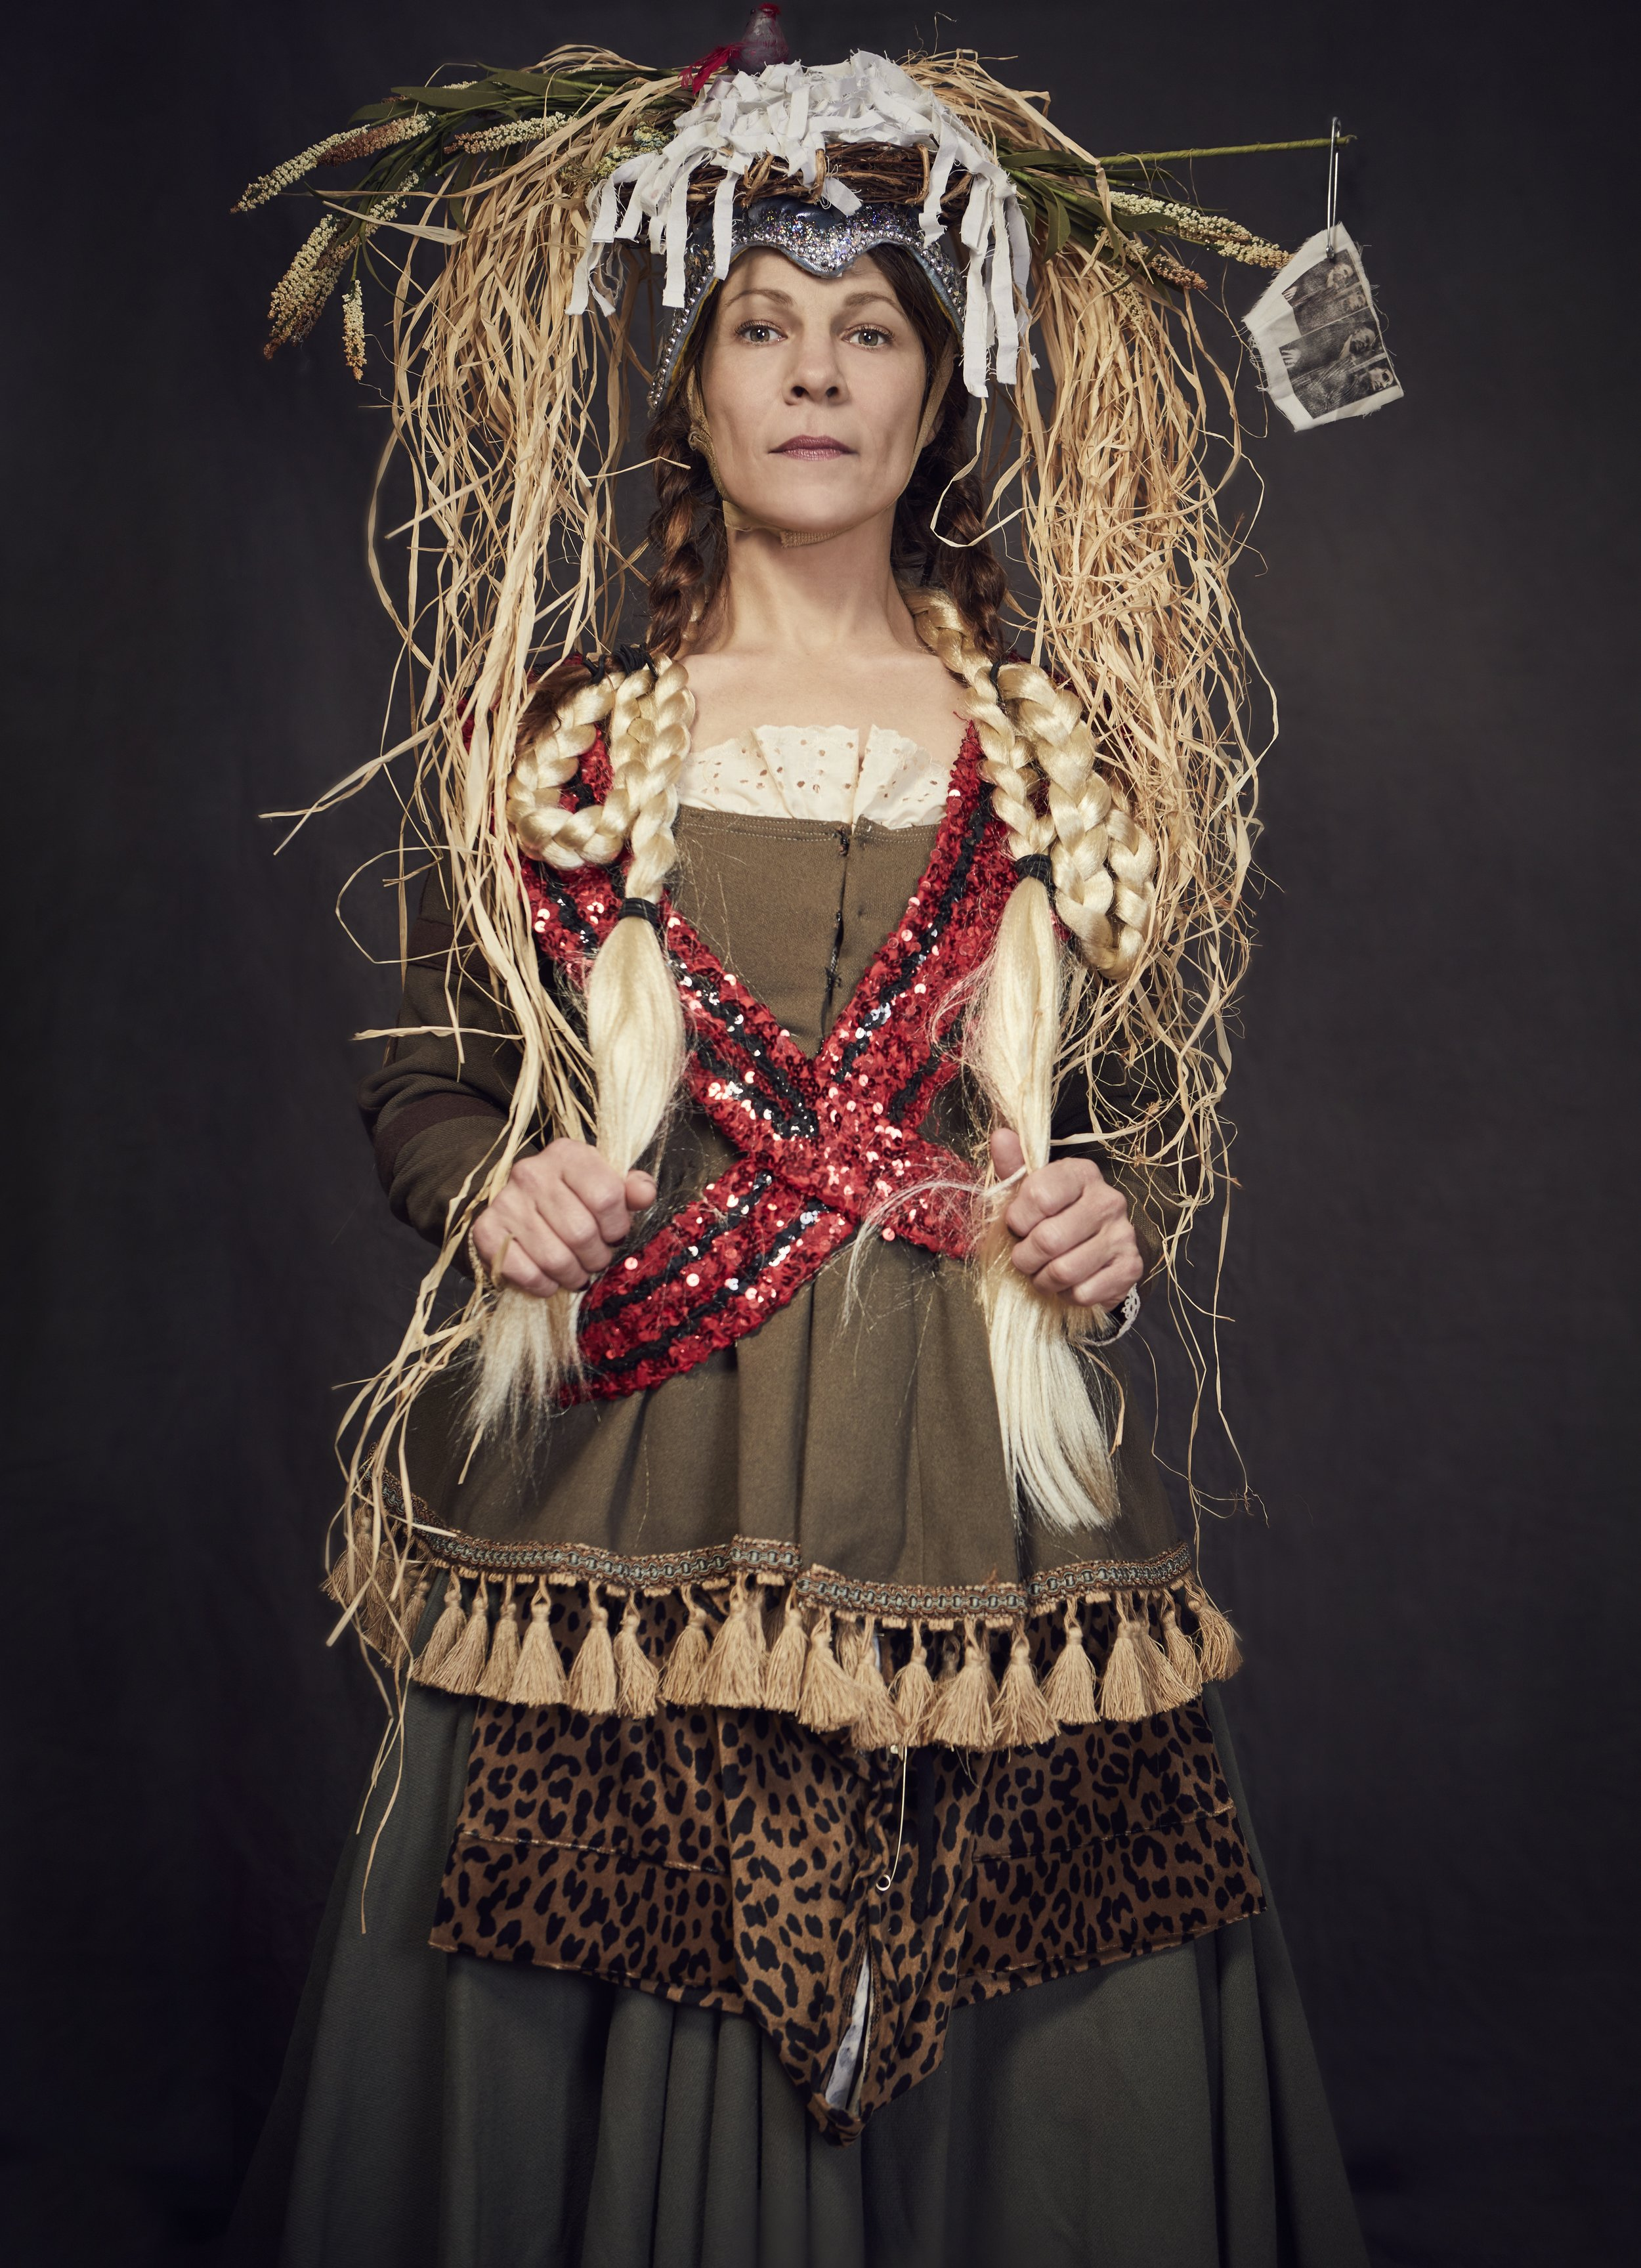 1.FarmhouseWhorehouse, an Artist Lecture by Suzanne Bocanegra starring Lili Taylor copy 2 (1).jpg